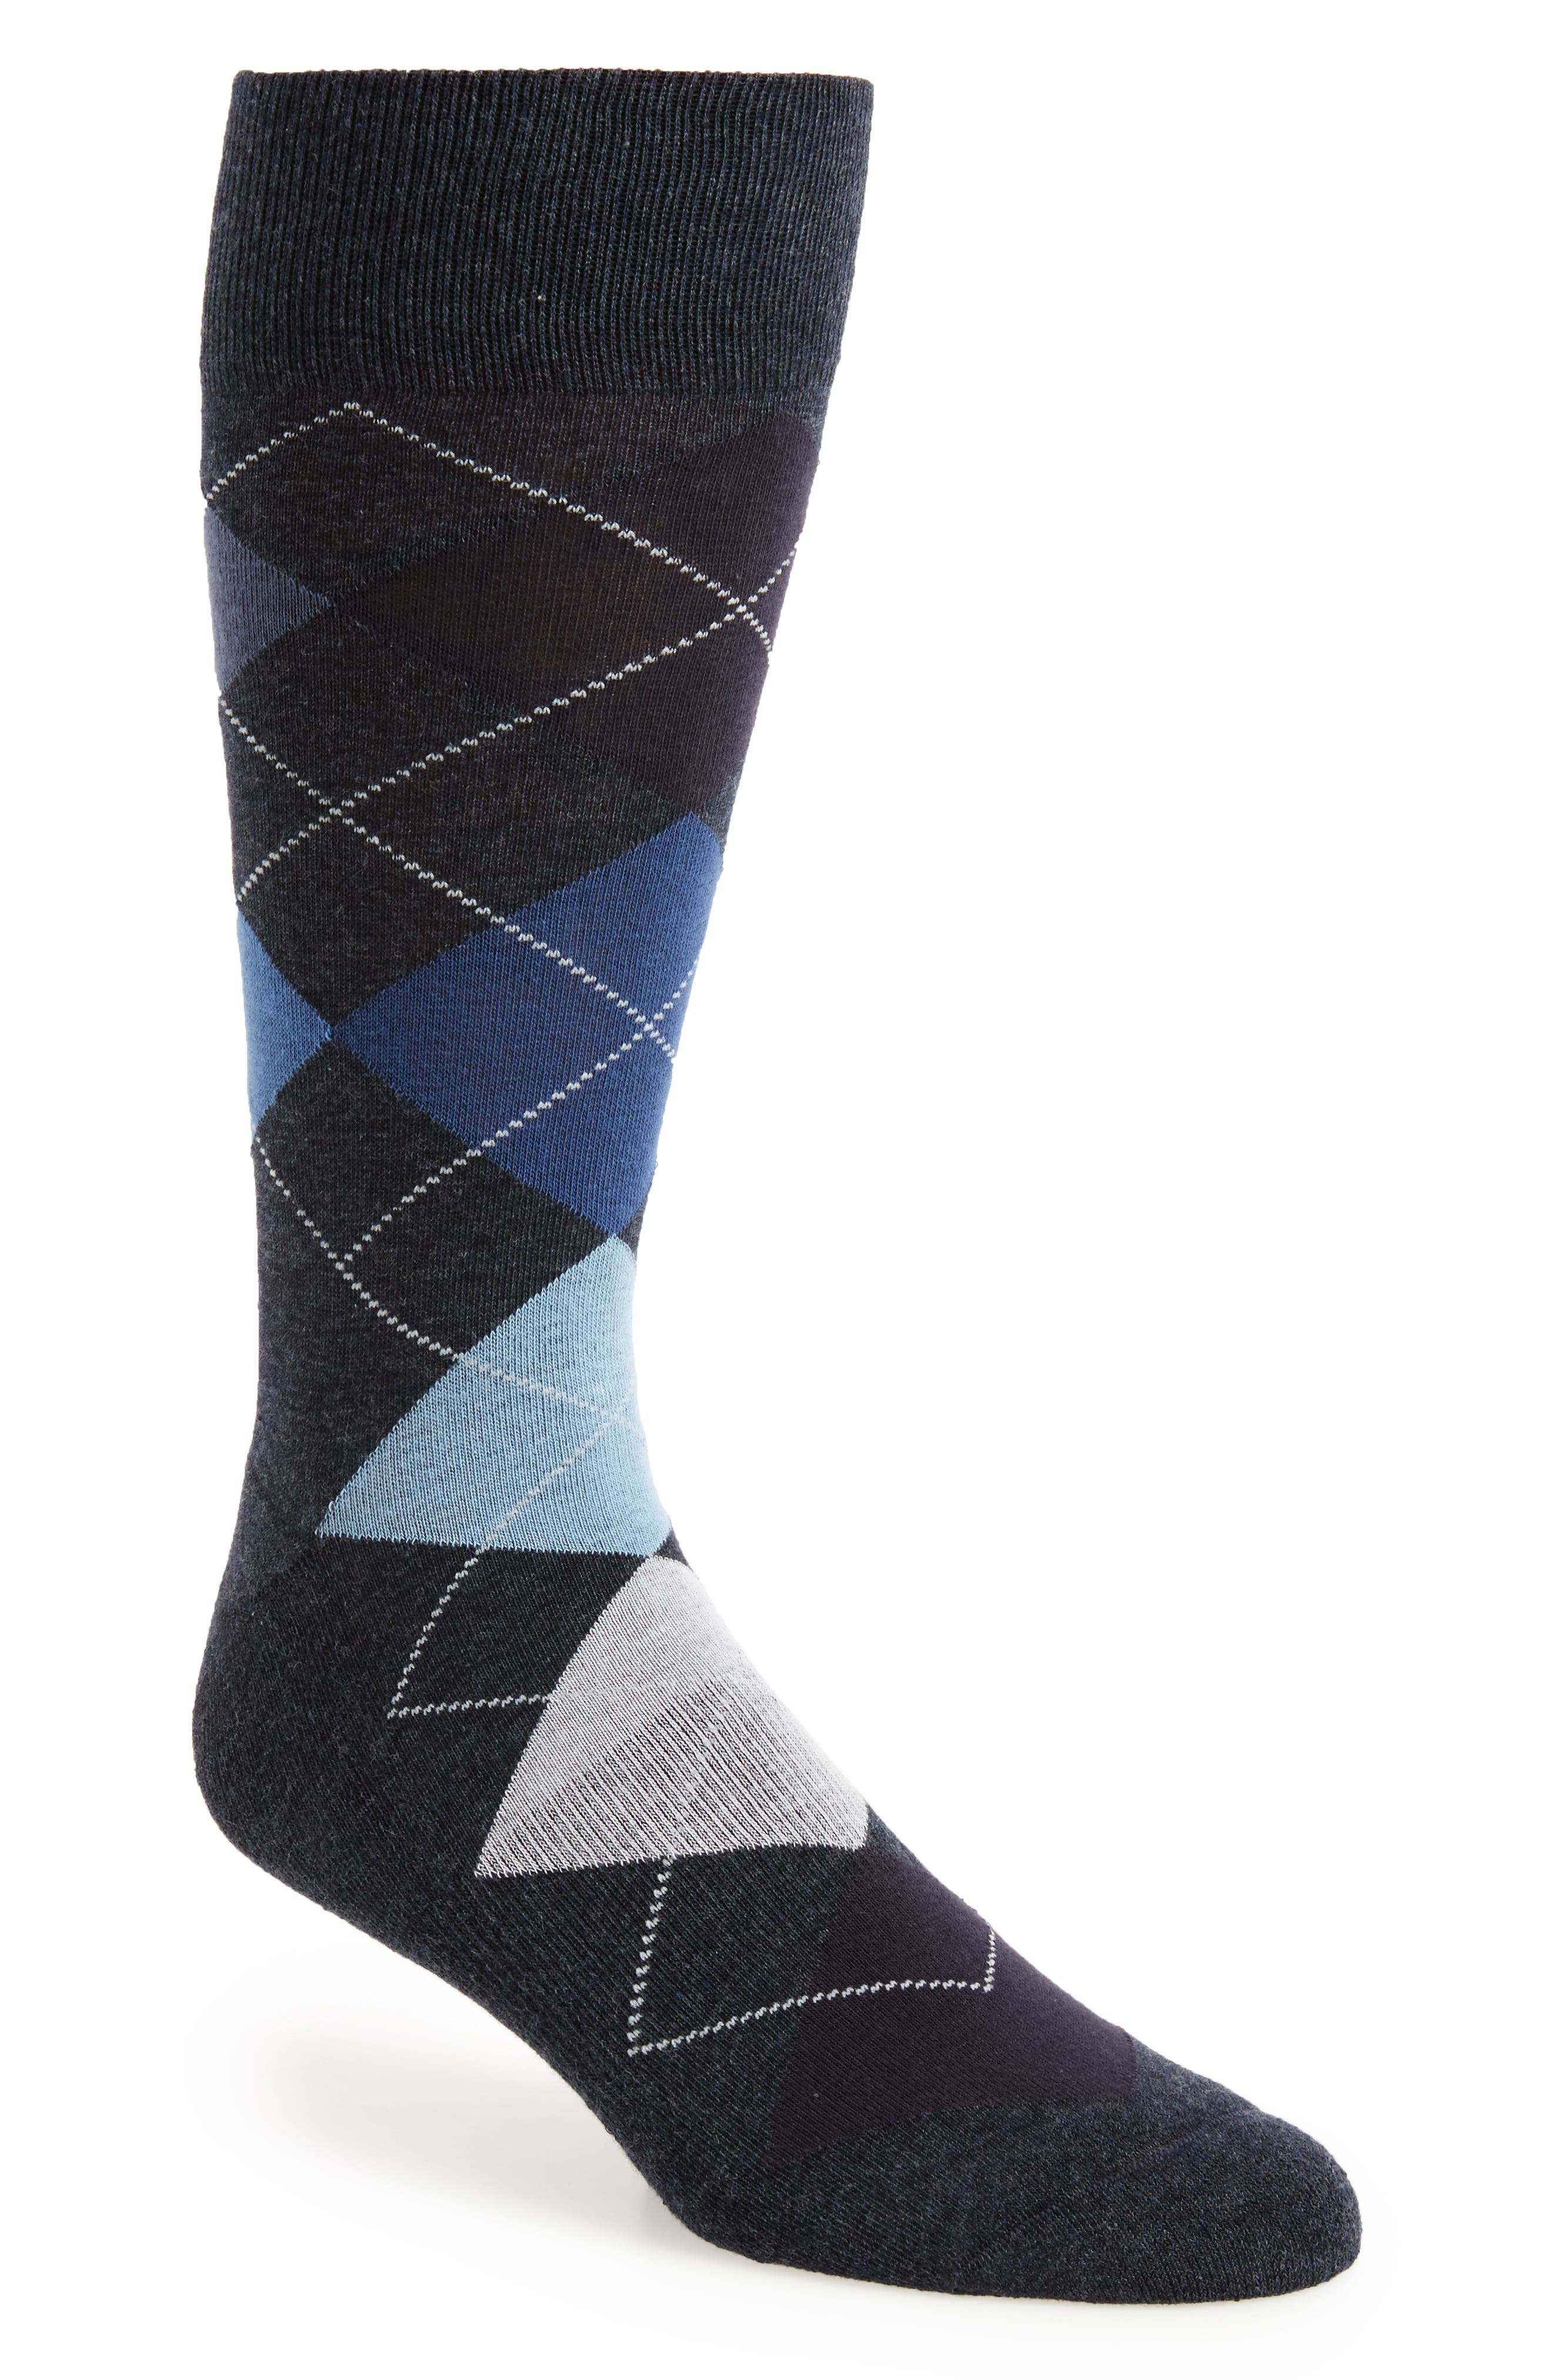 Gradient Argyle Socks,                         Main,                         color, Navy Heather